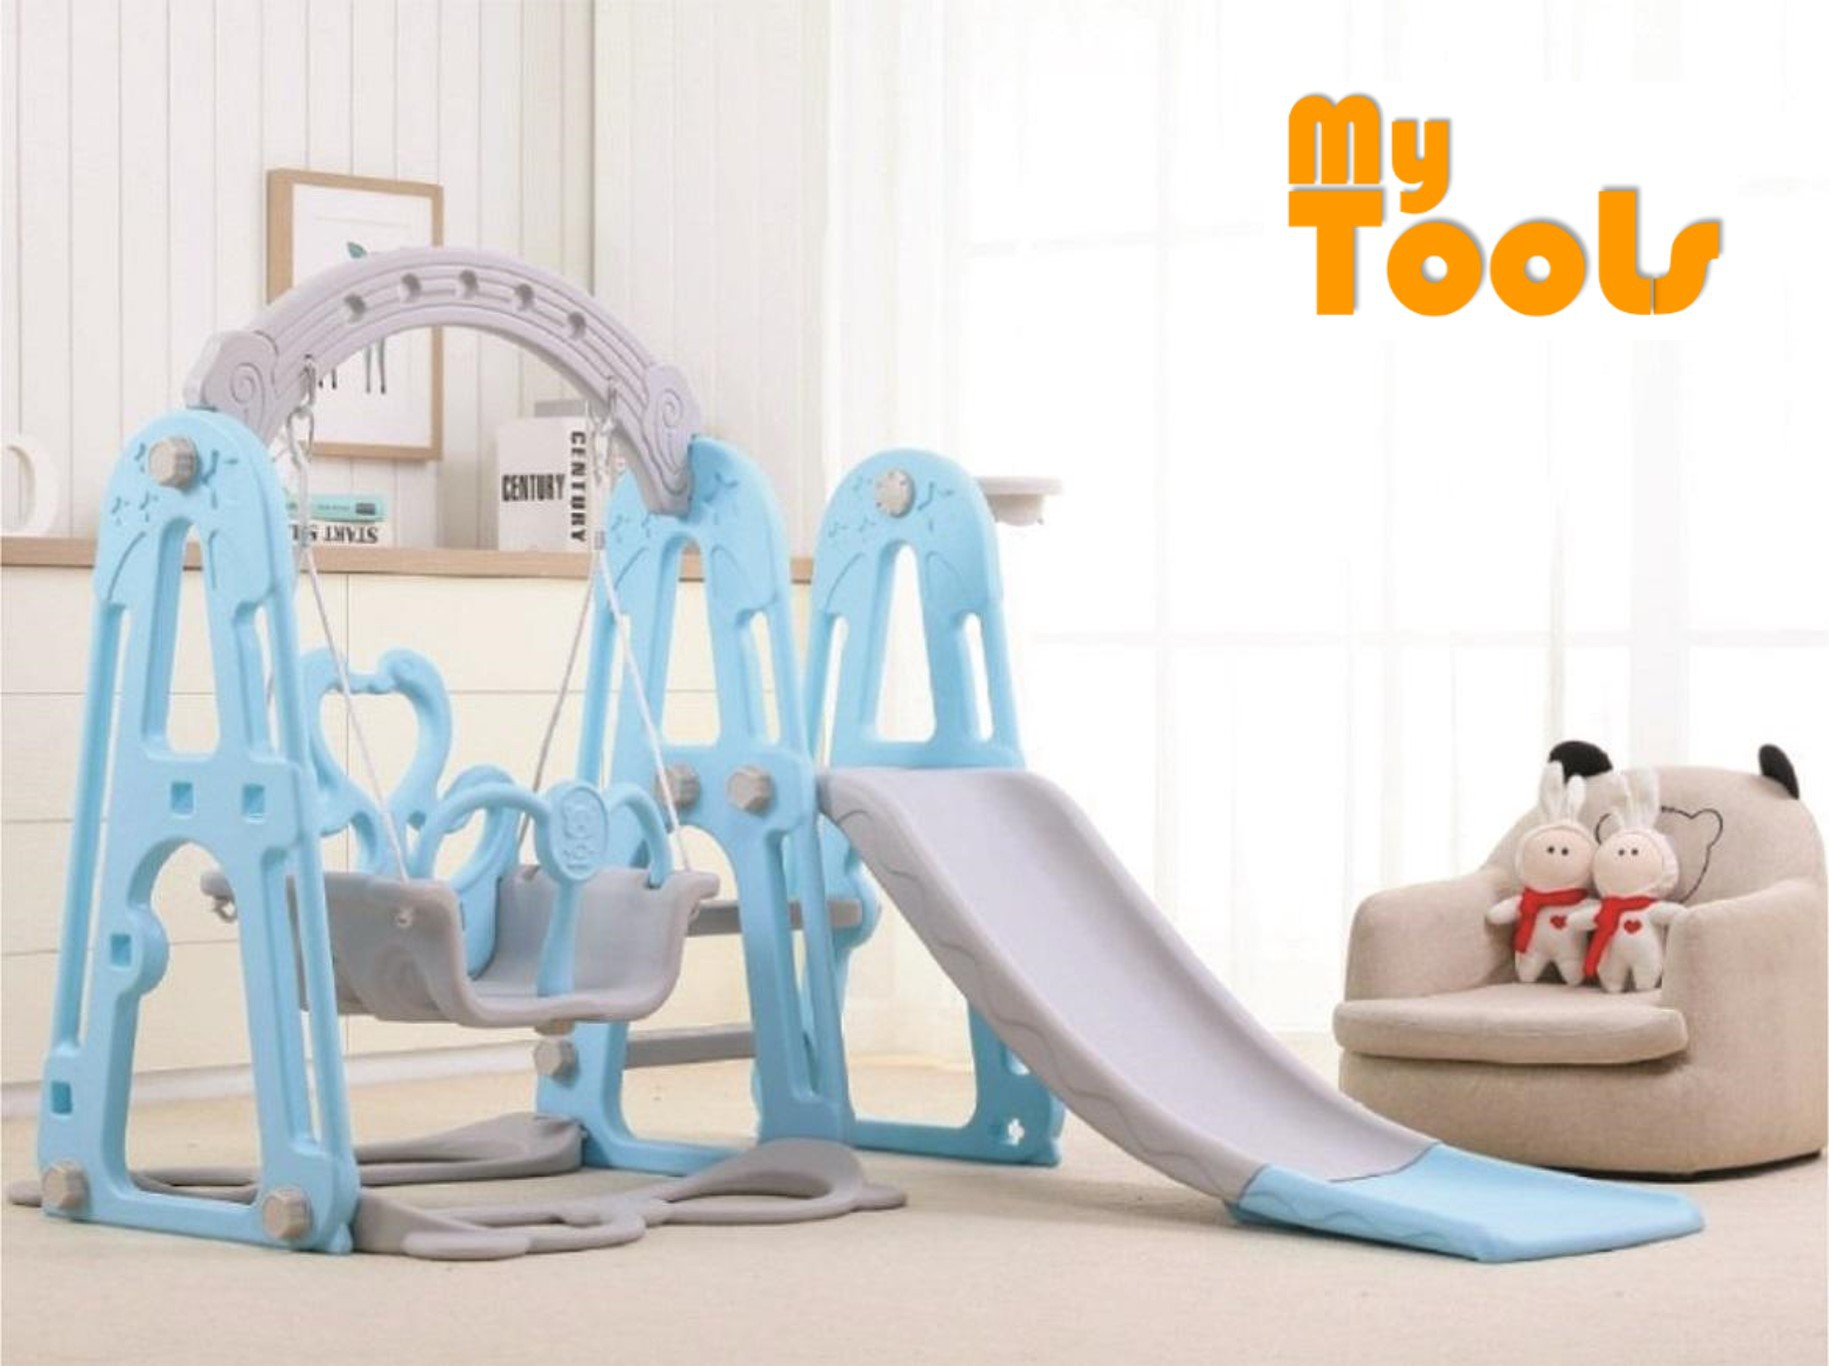 Mytools 3 IN 1 Swing Children Slide Kids Slide With Basketball Net Indoor Outdoor Colorful Mini Playground (BLUE)